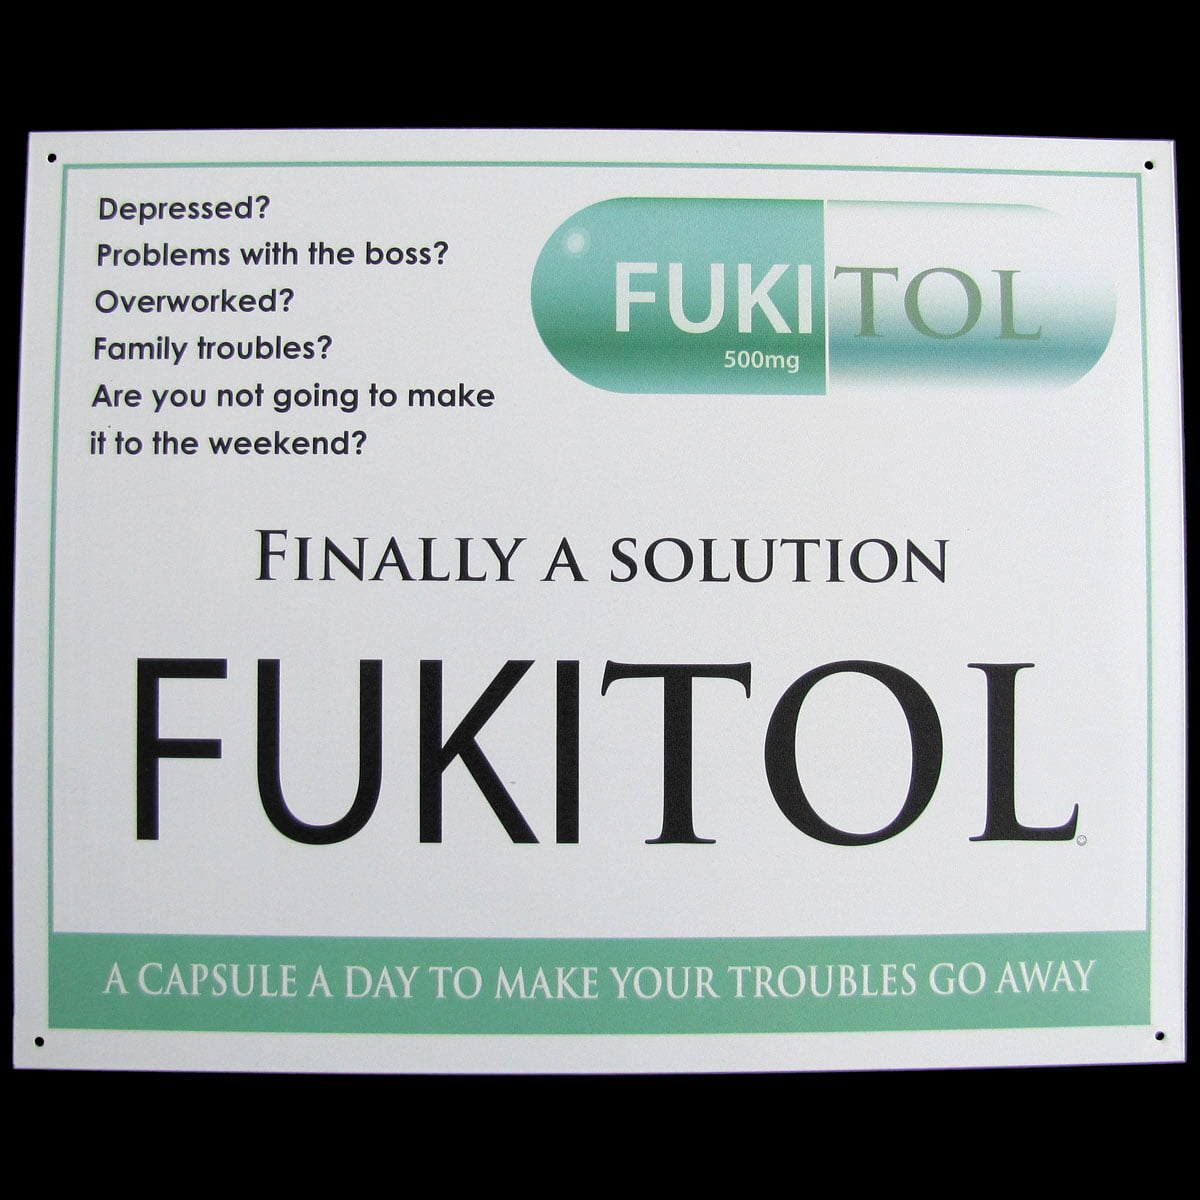 inspirational signs for office. FUKITOL Prescription Drug Medicine FUNNY WORK SIGN Doctor\u0027s Office Medical Decor - Walmart.com Inspirational Signs For L